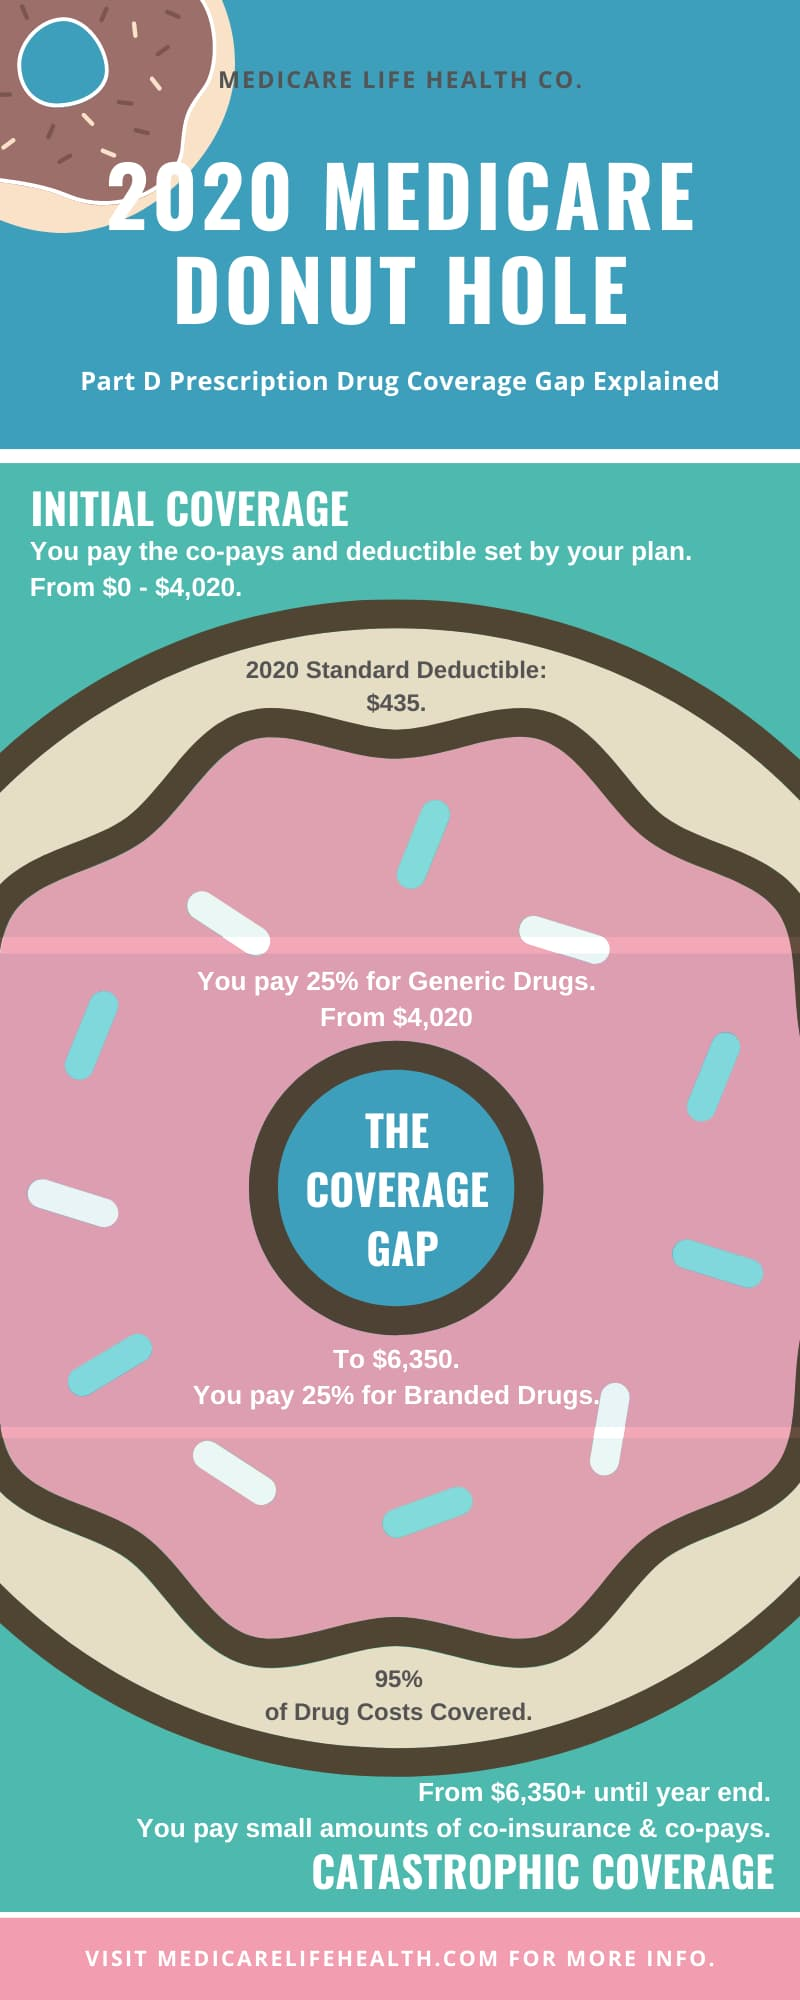 2020 Medicare Donut Hole Explained by MedicareLifeHealth.com